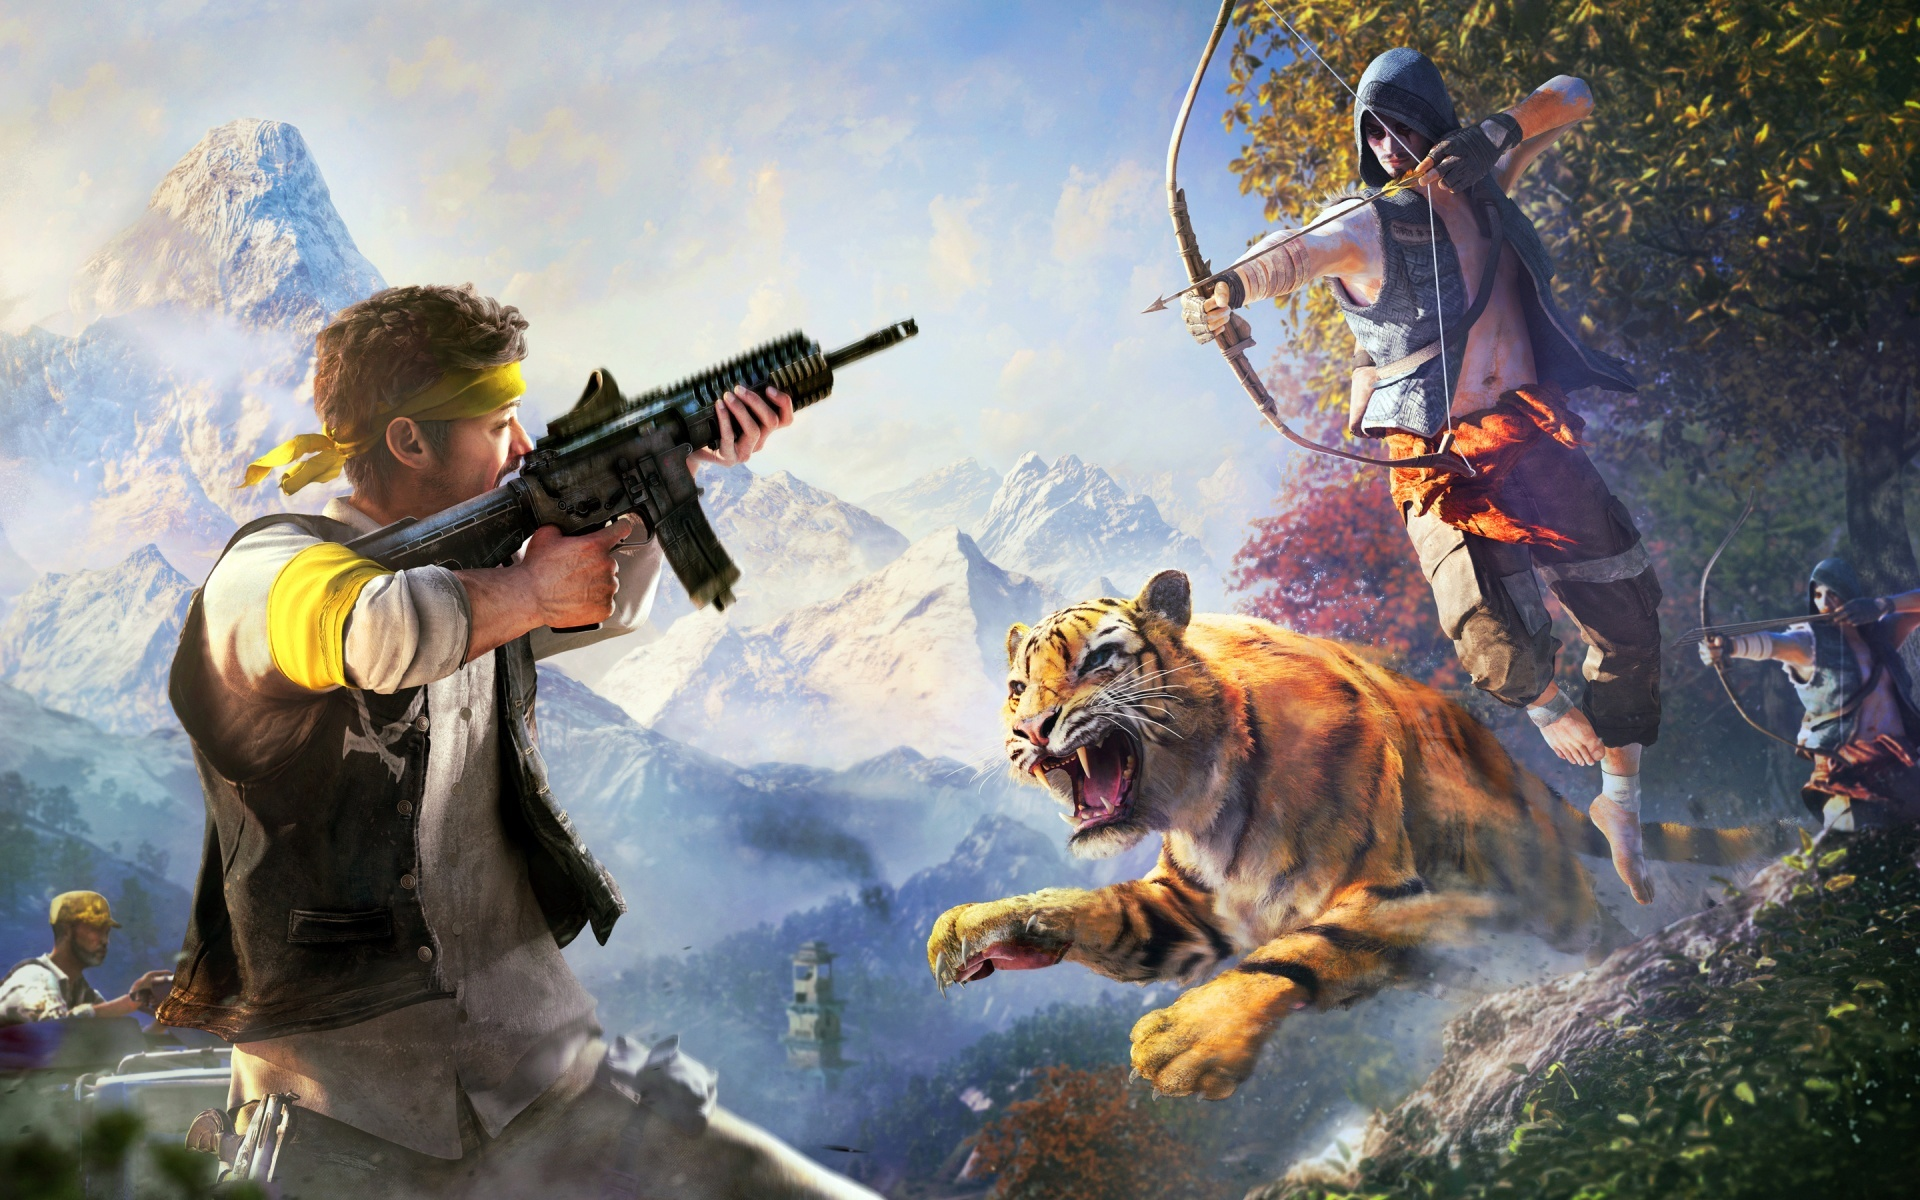 fond d'ecran far cry 4